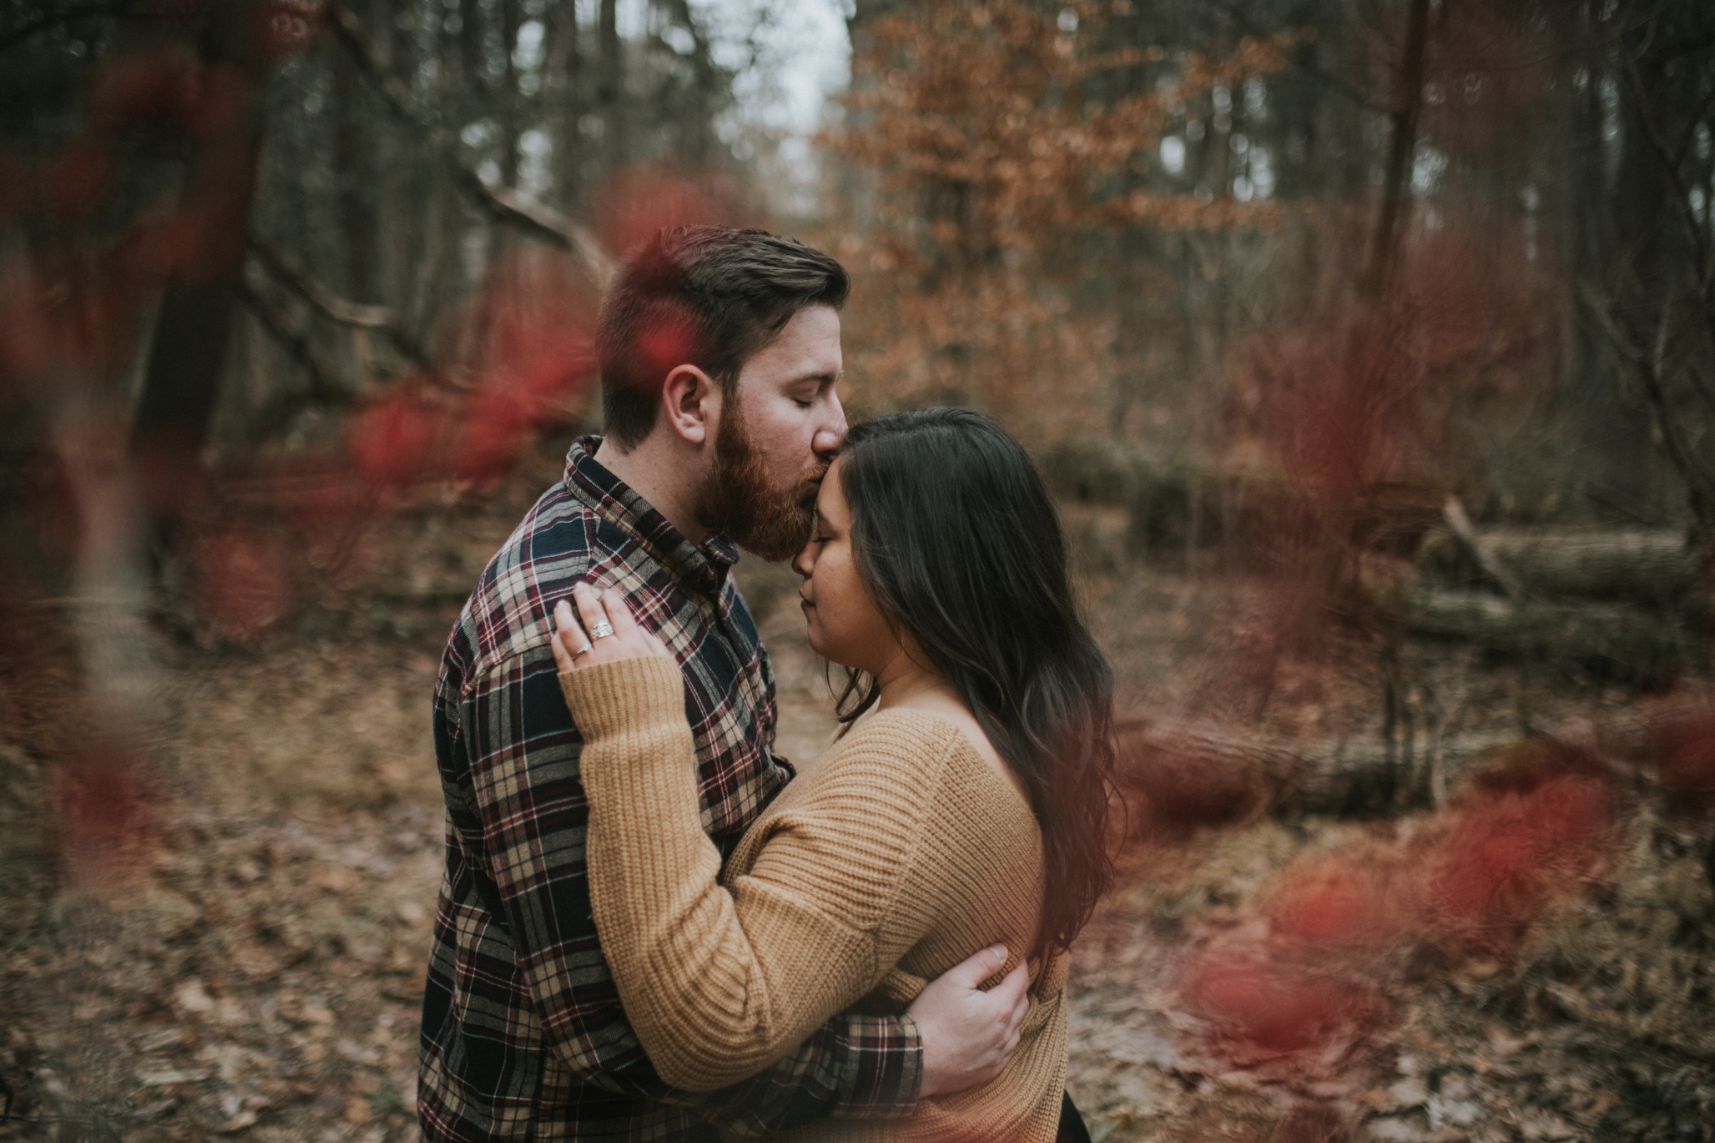 matt-natalia-winter-woods-engagement-session-pennsylvania-wedding-photographer-32